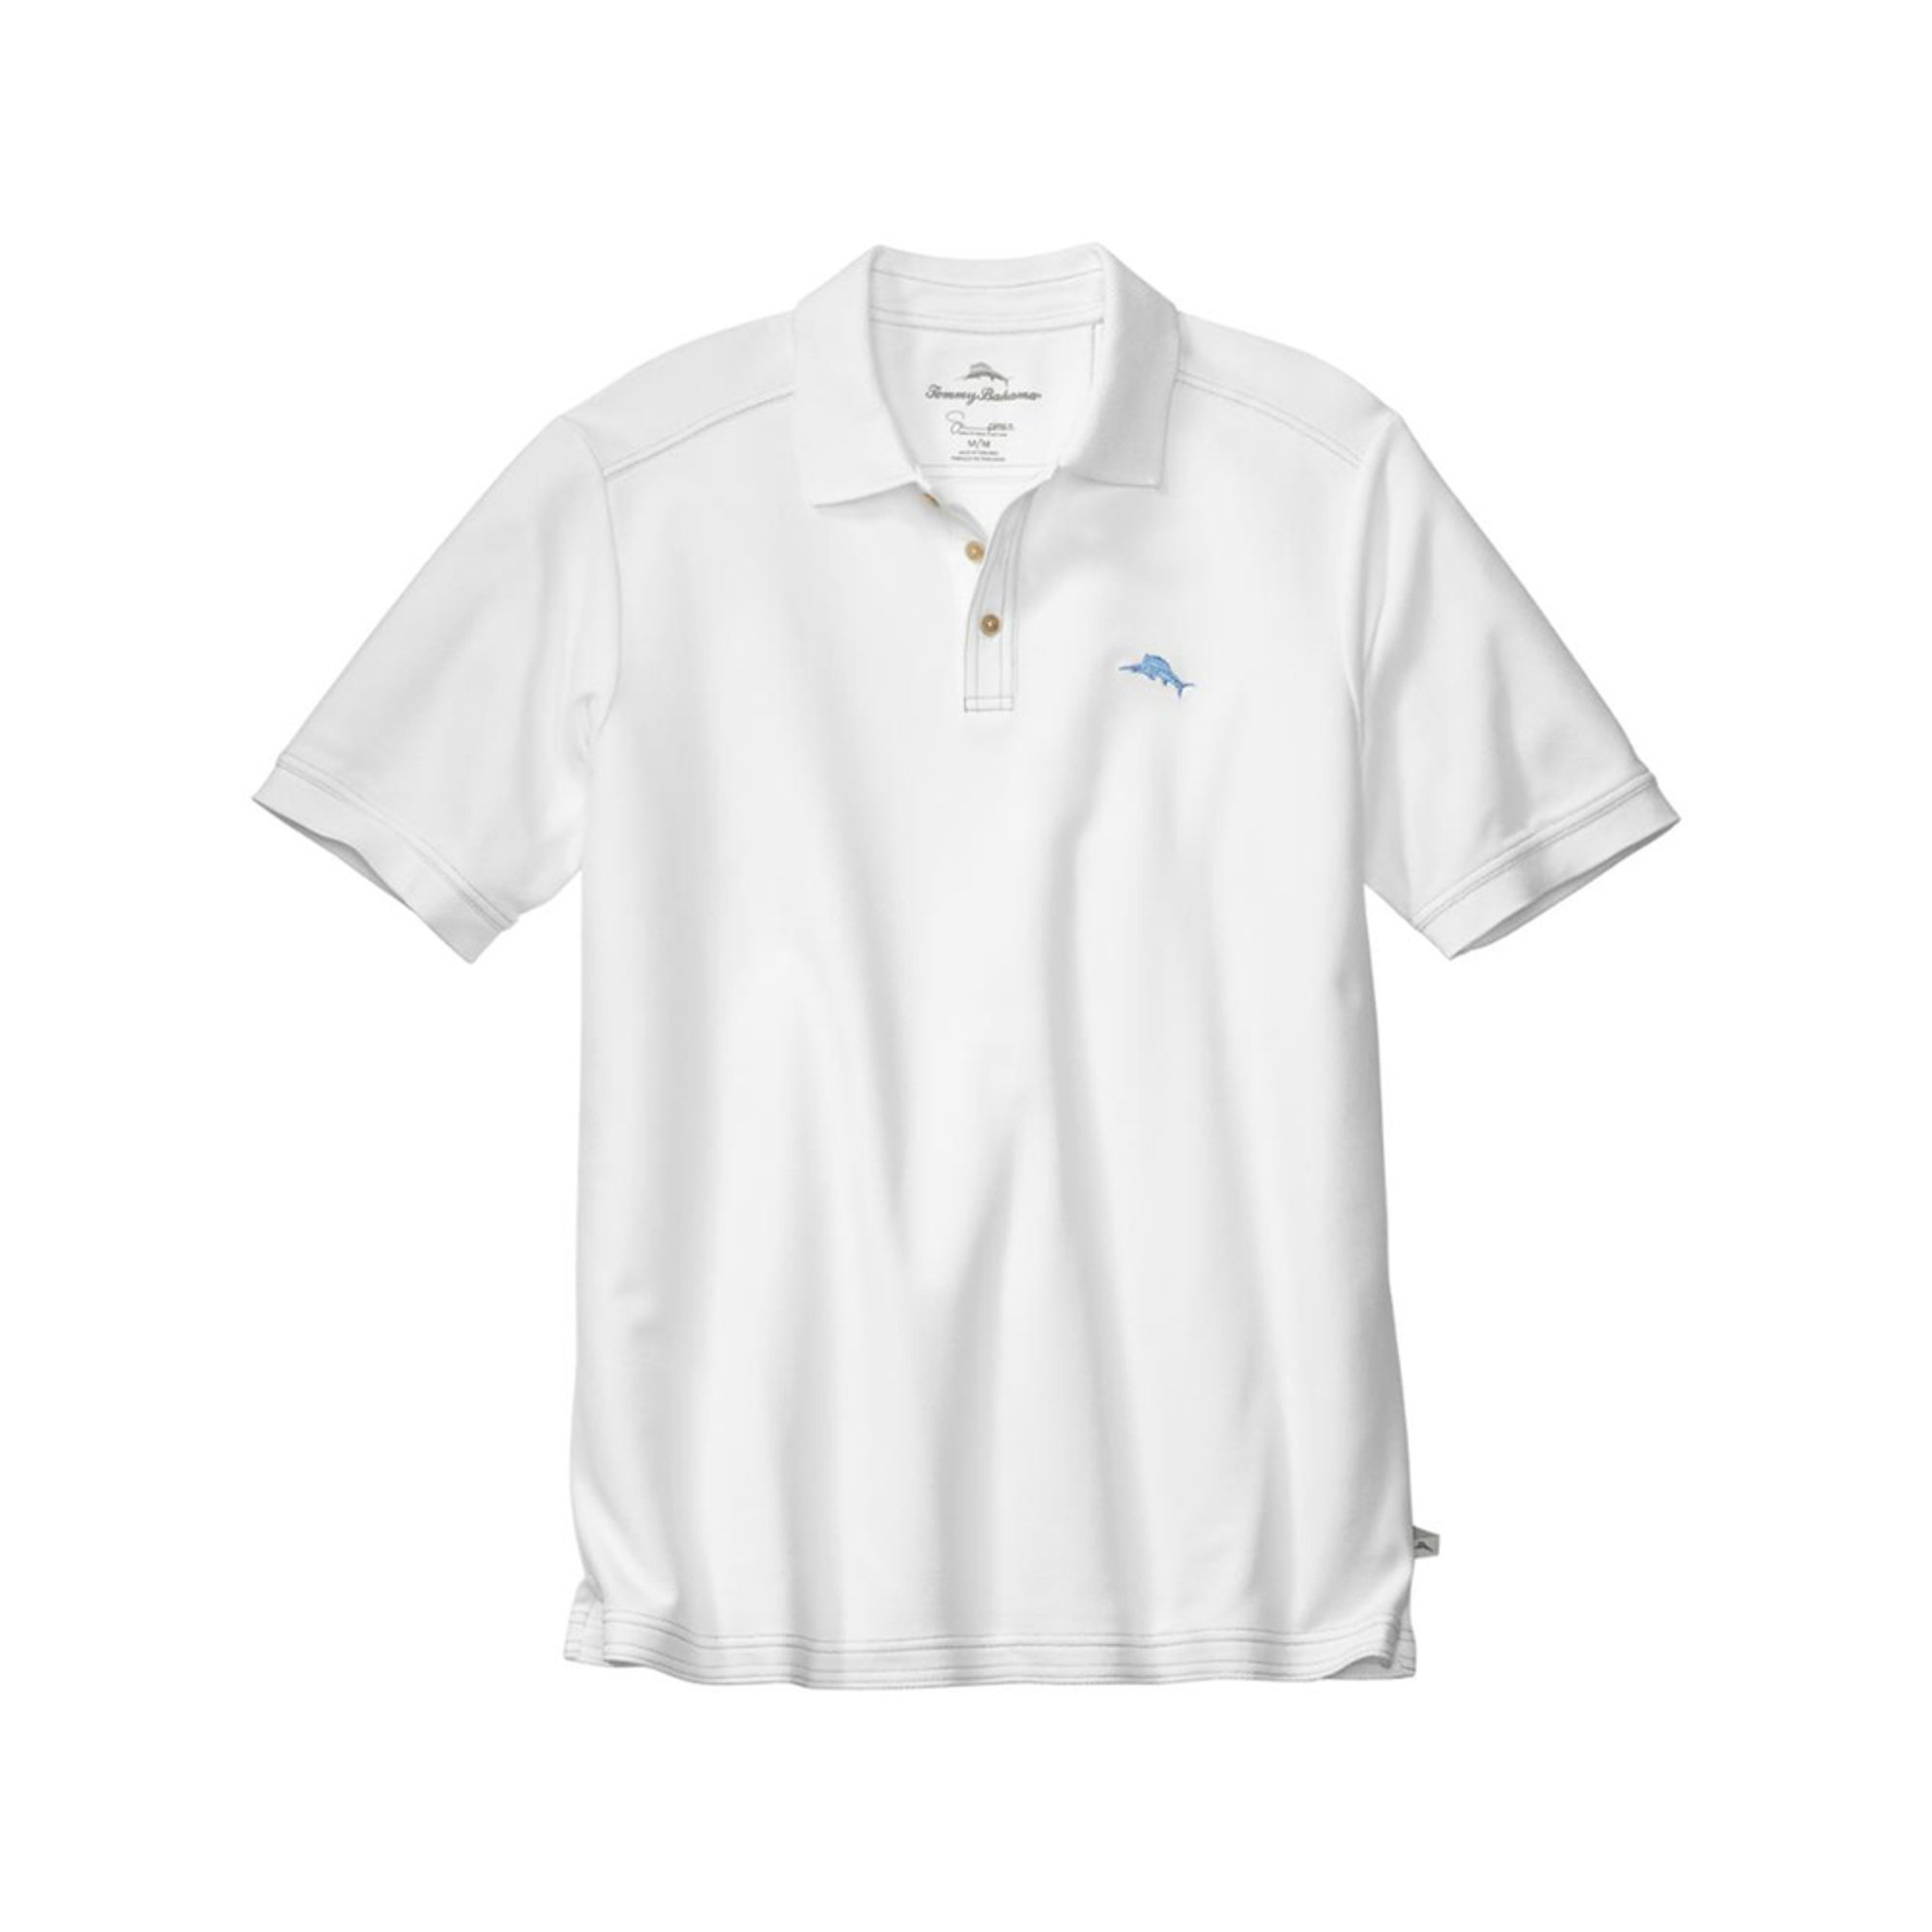 Tommy bahama emfielder polo men 39 s polos apparel shop for Tommy bahama polo shirts on sale